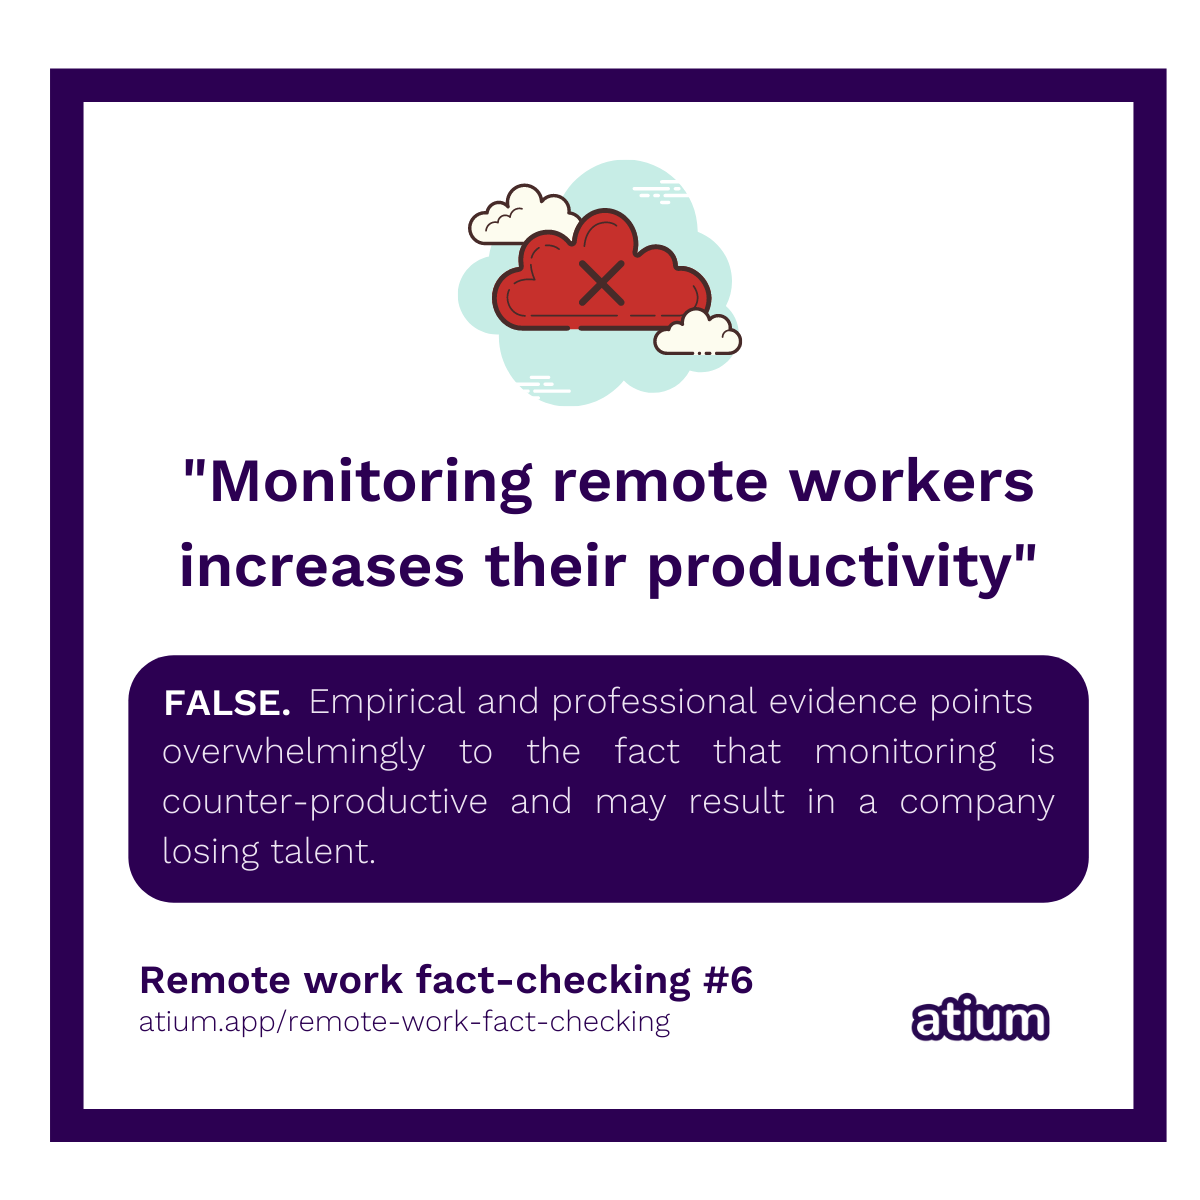 Monitoring remote workers increases their productivity